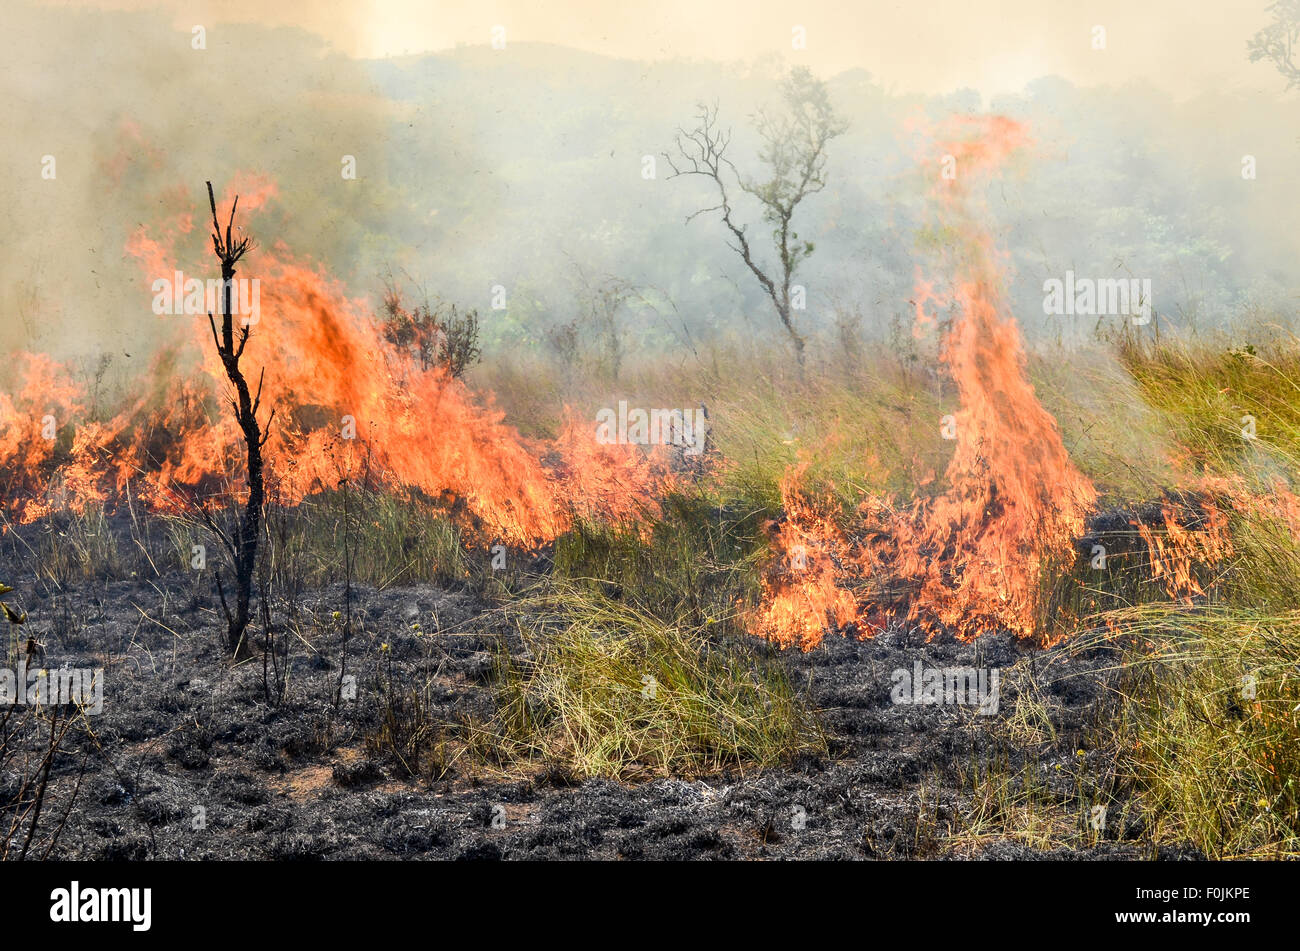 Stubble burning with controlled fires in a reserve in Cameroon - Stock Image